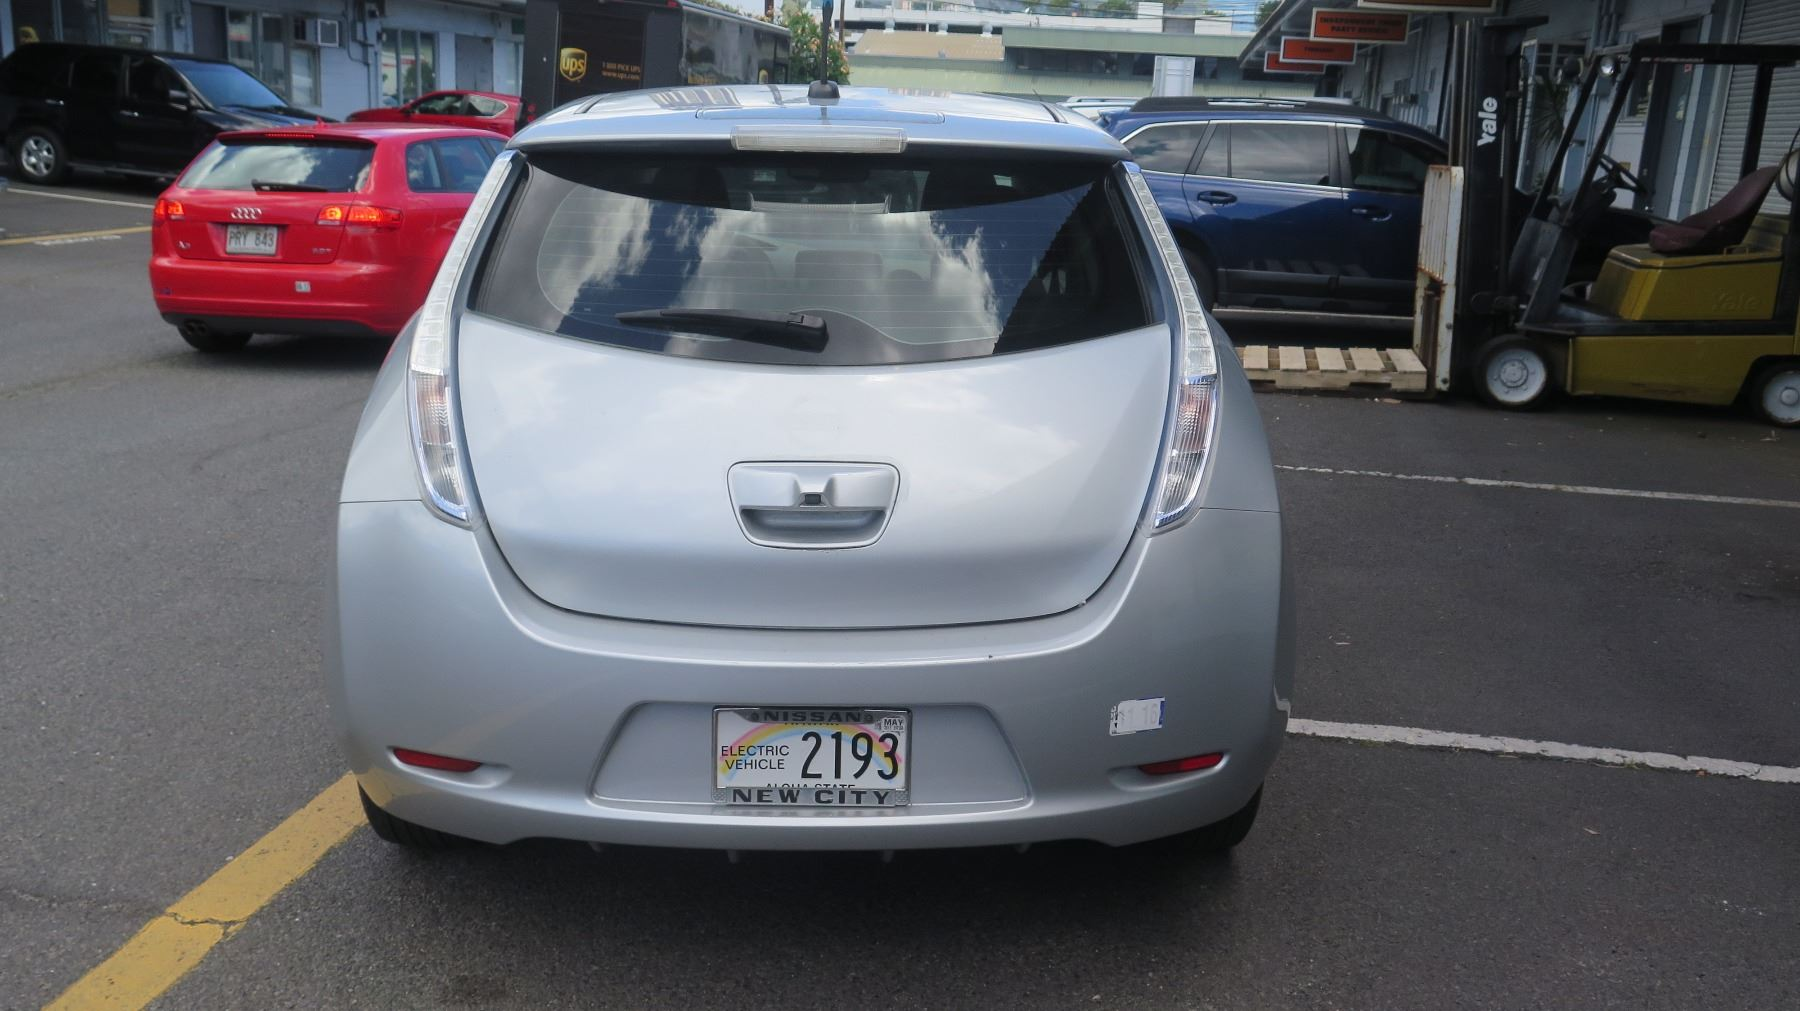 ... Image 4 : 2012 Nissan Leaf Electric Car   Under Warranty, Transferable,  Battery Charges ...